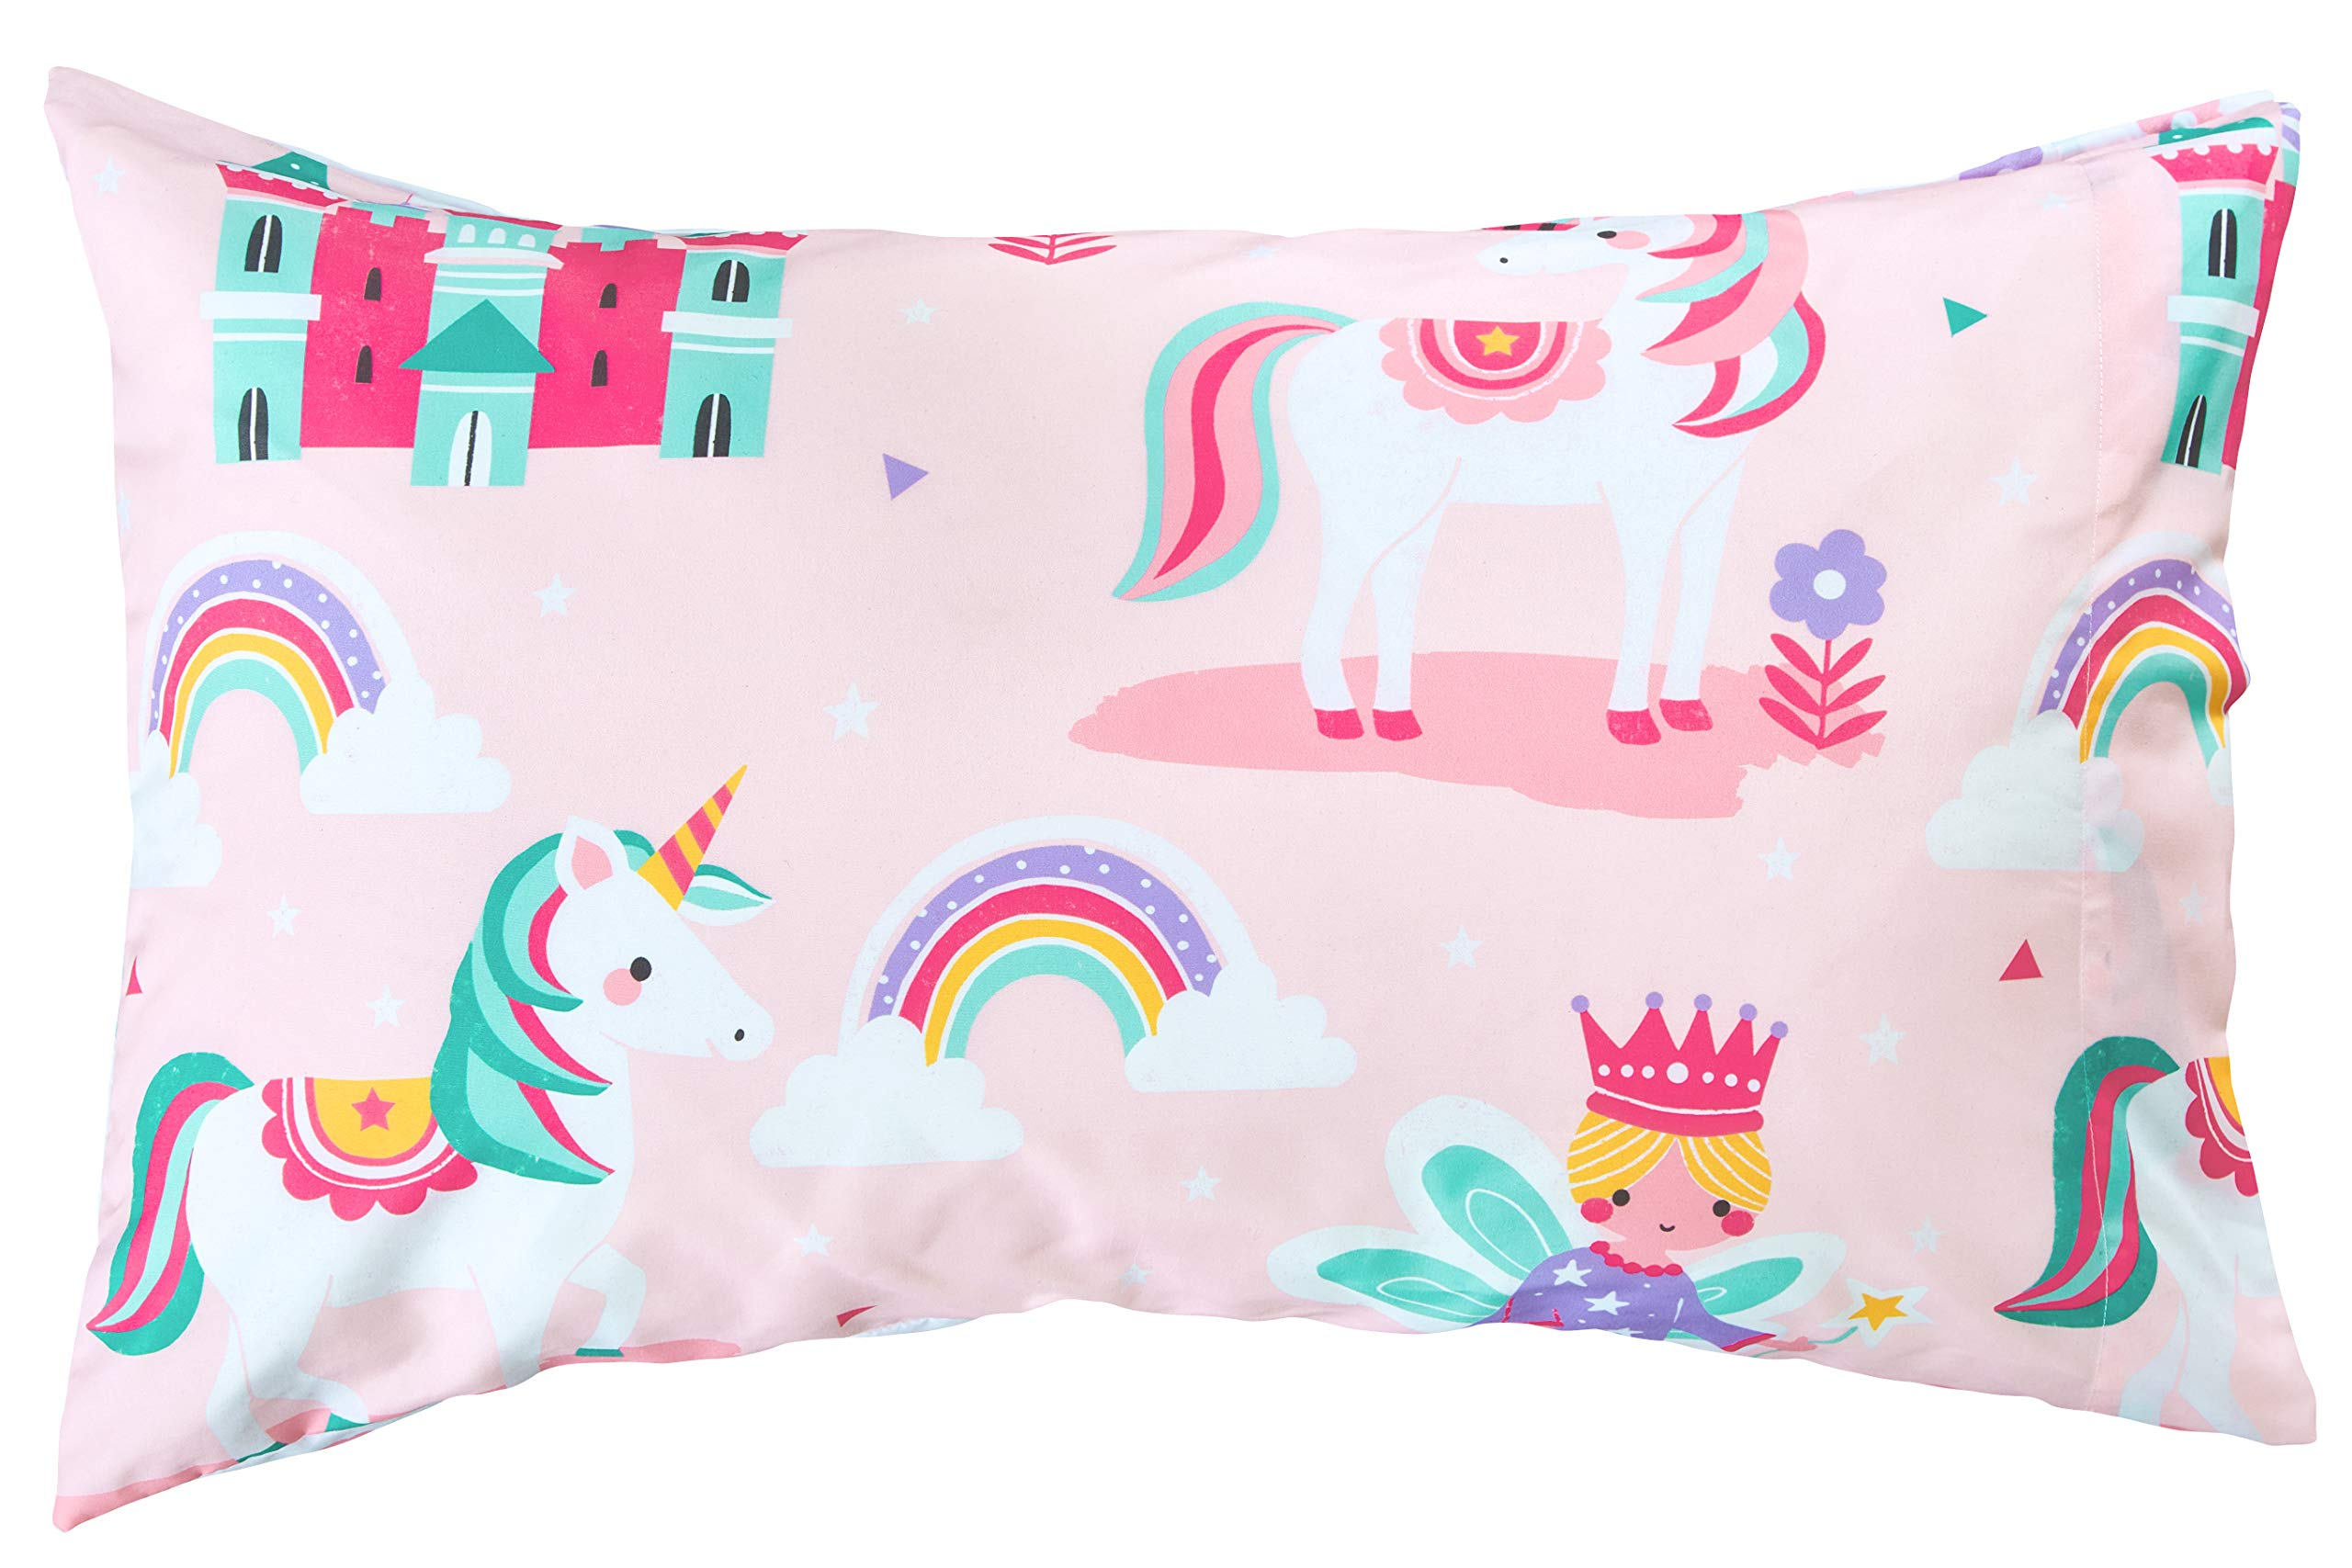 Bloomsbury Mill - 4 Piece Toddler Comforter Set - Magic Unicorn, Fairy Princess & Enchanted Castle - Pink - Kids Bedding Set 6